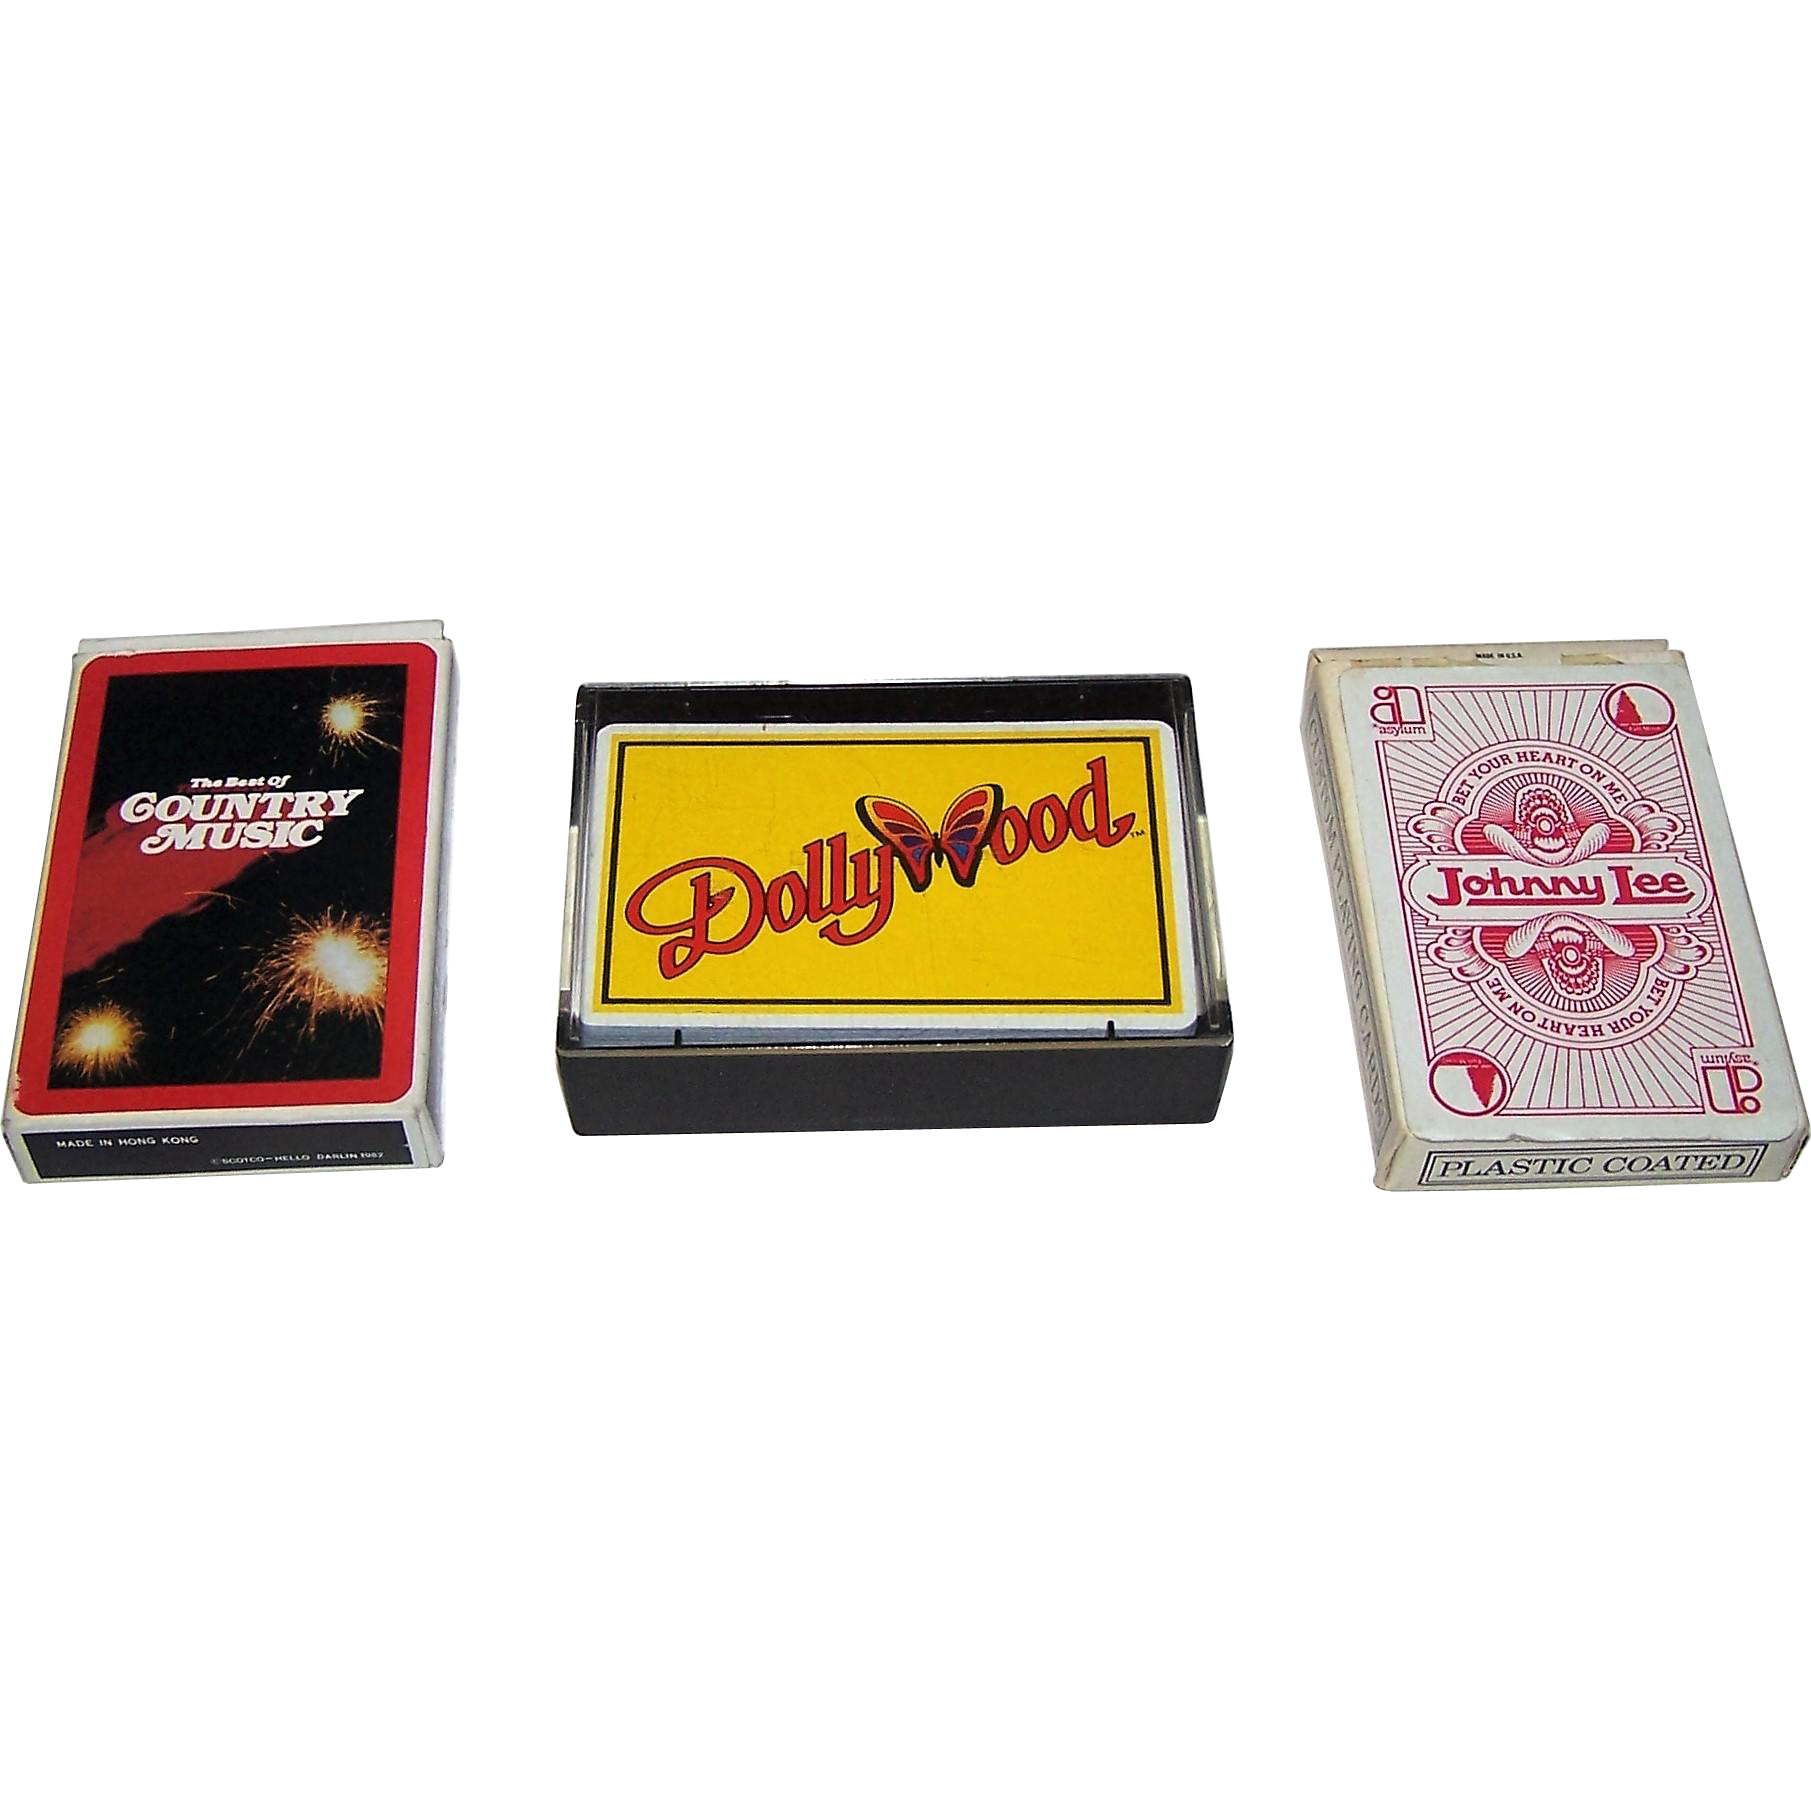 "3 Decks Country Music Playing Cards, $10/ea.: (i) Scotco – Hello Darlin ""The Best of Country Music,"" c.1982; (ii) Wiskur & Co., Inc. ""DollyWood"", c.1986; (iii) USPC (Liberty) ""Johnny Lee – Bet Your Heart on Me"", Asylum Records Publisher, c.1981"